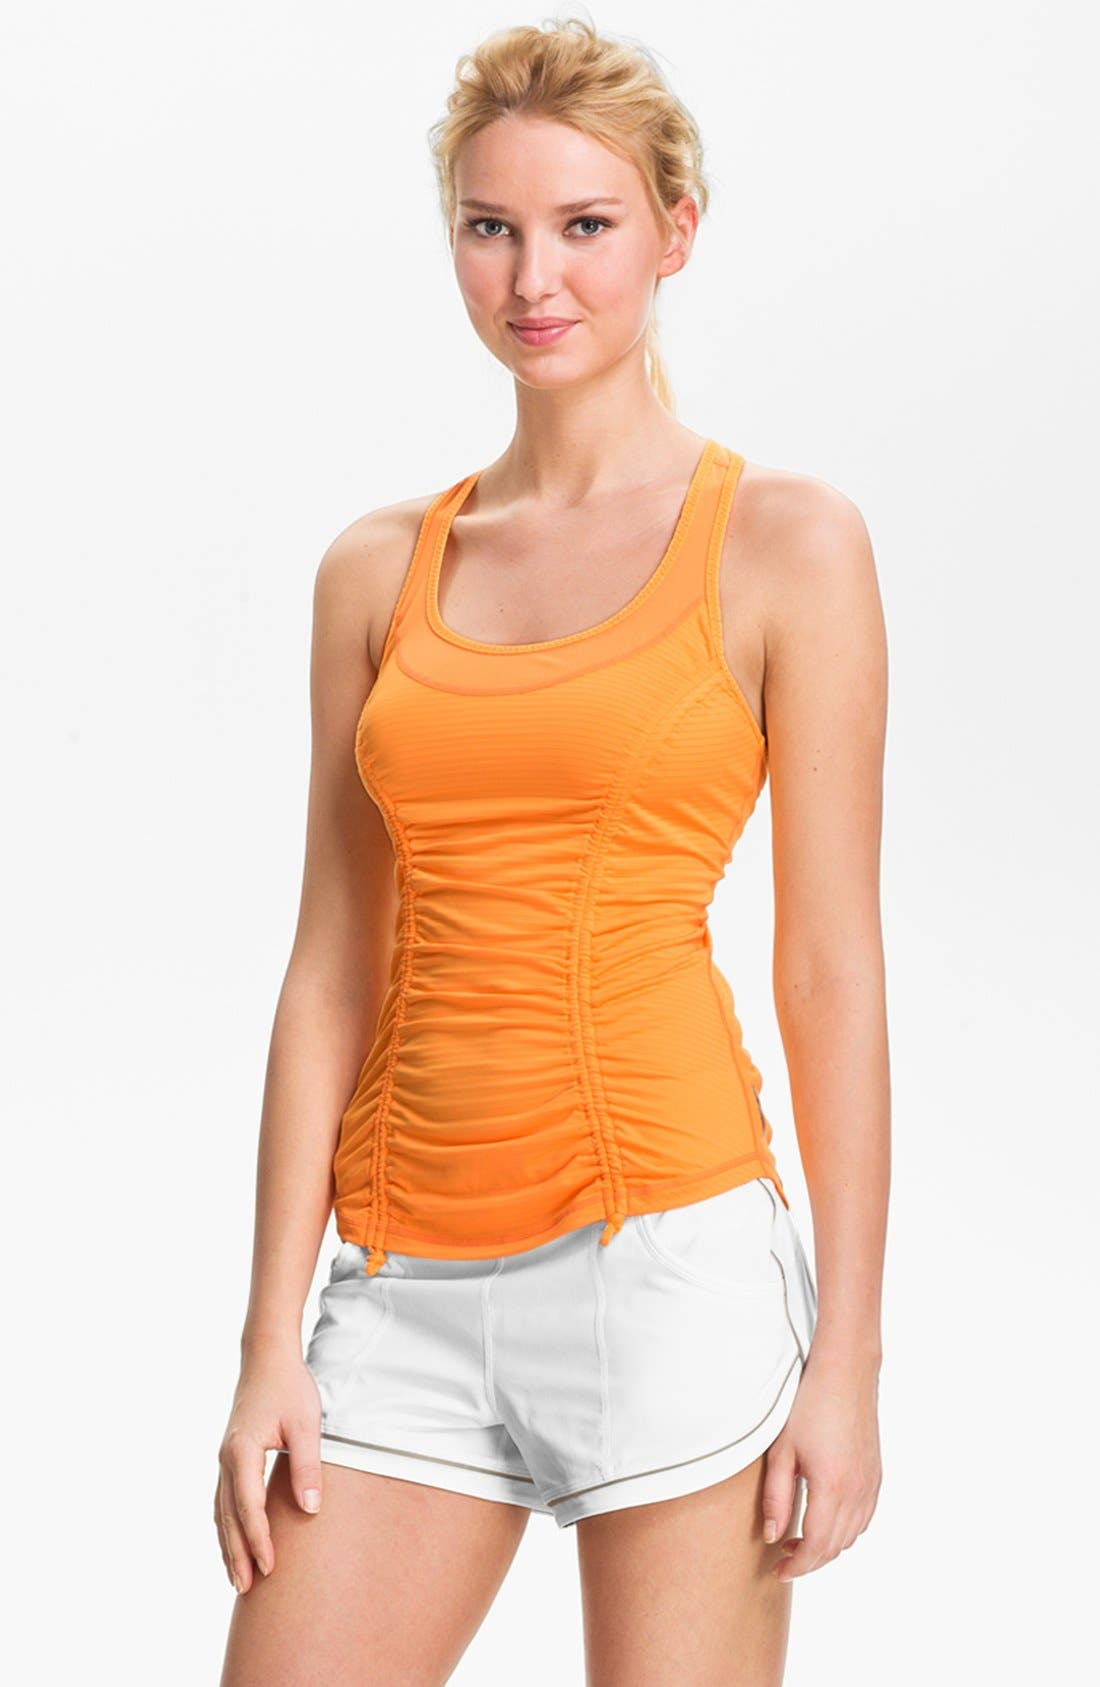 Main Image - Zella 'She Girl' Ruched Racerback Tank